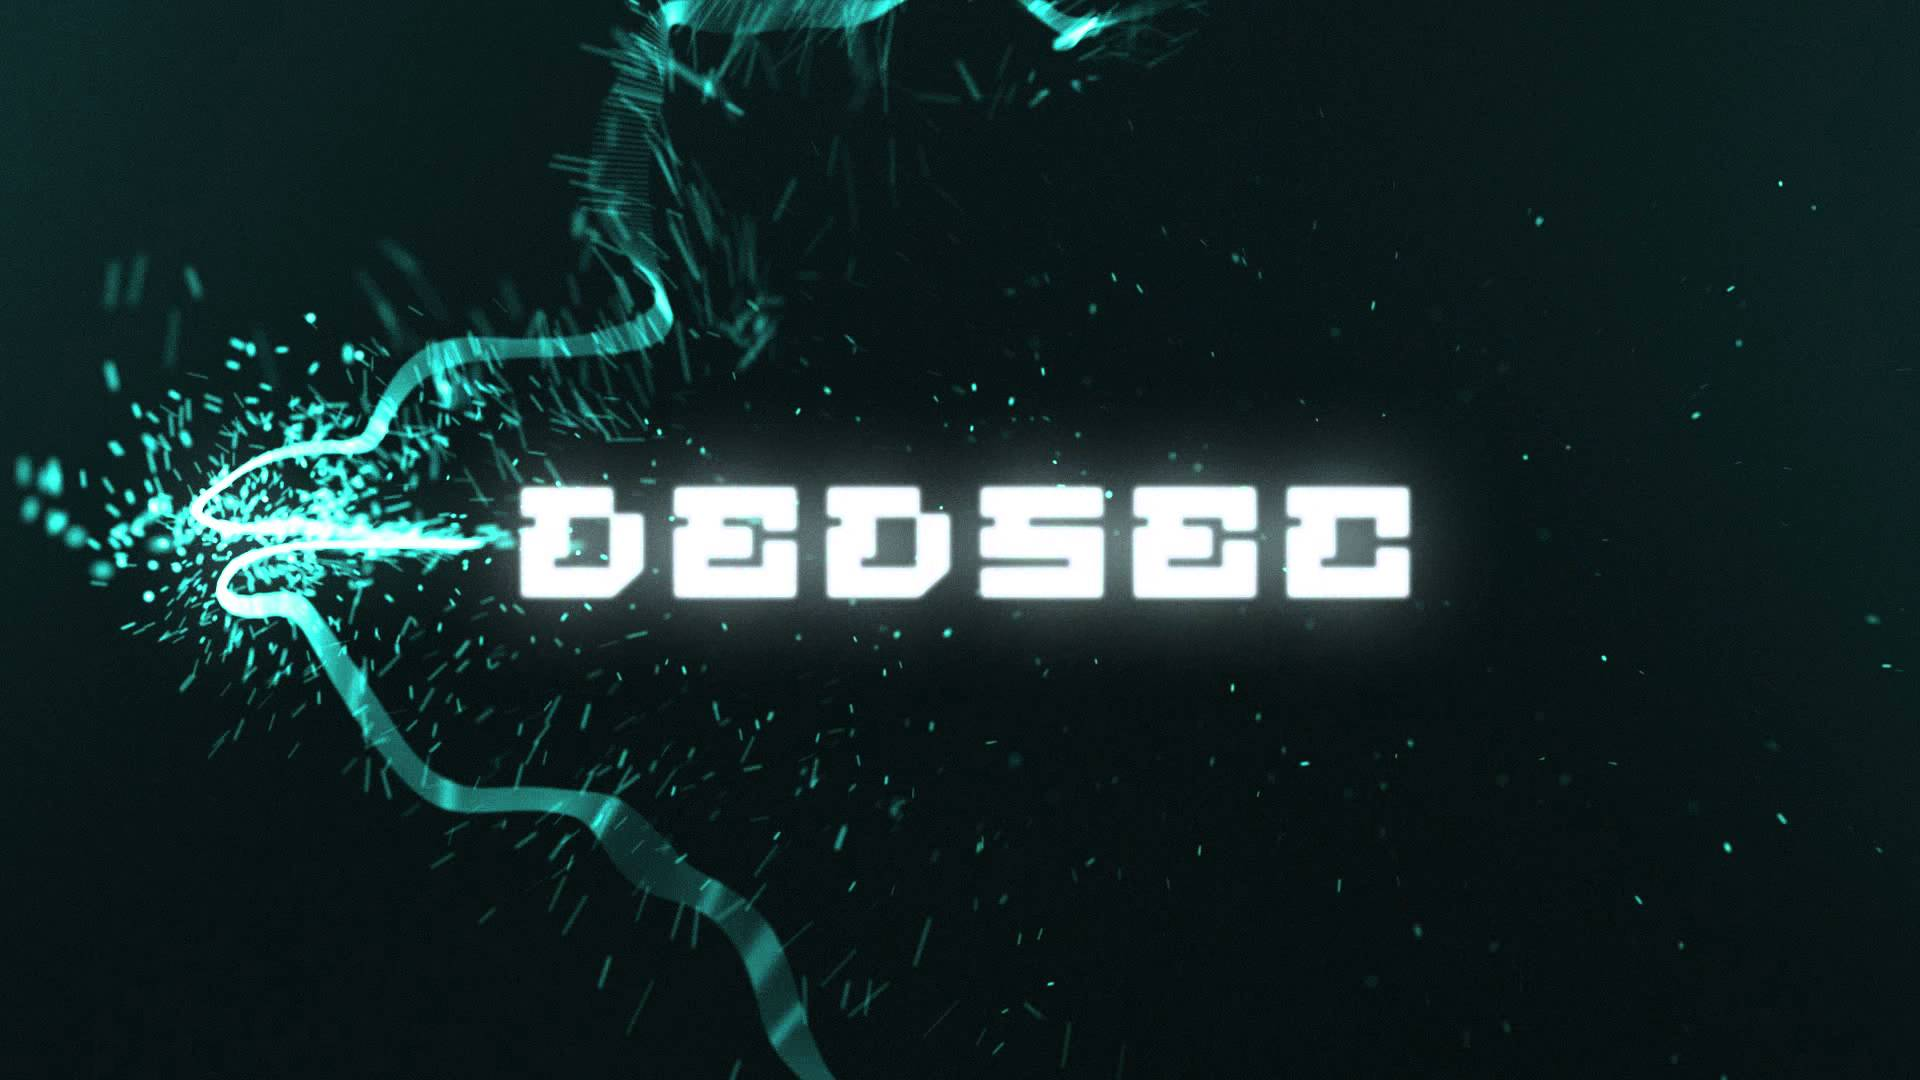 Dedsec Wallpaper Wallpapersafari